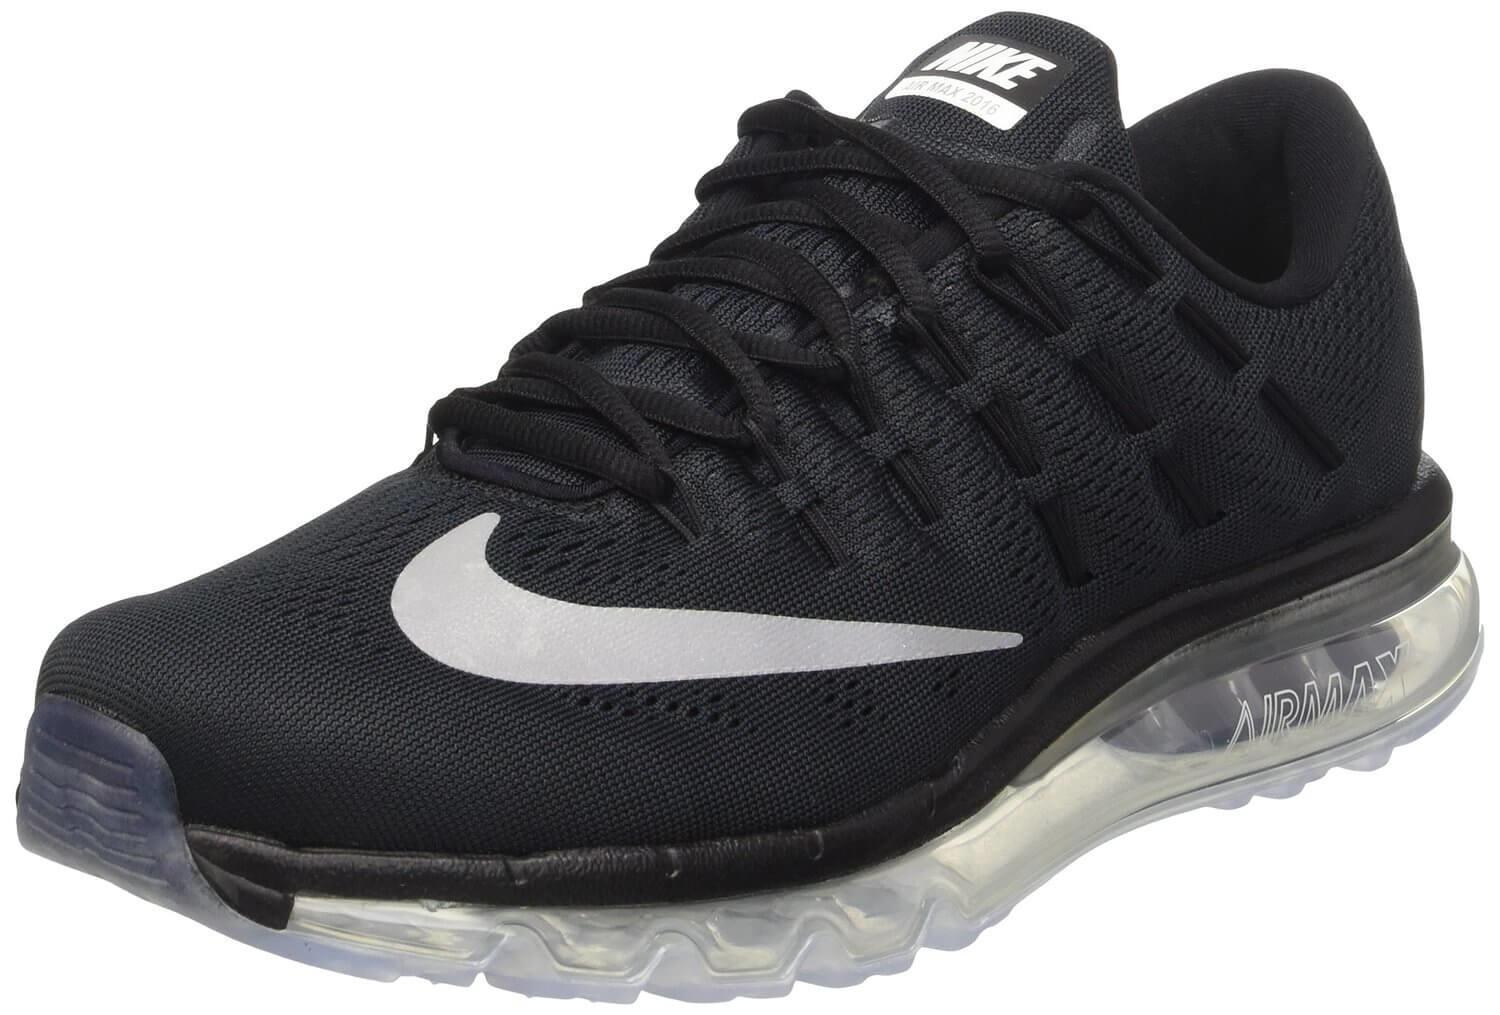 cheaper 9d61d c55e4 Nike Air Max 2016 Reviewed & Rated for Quality